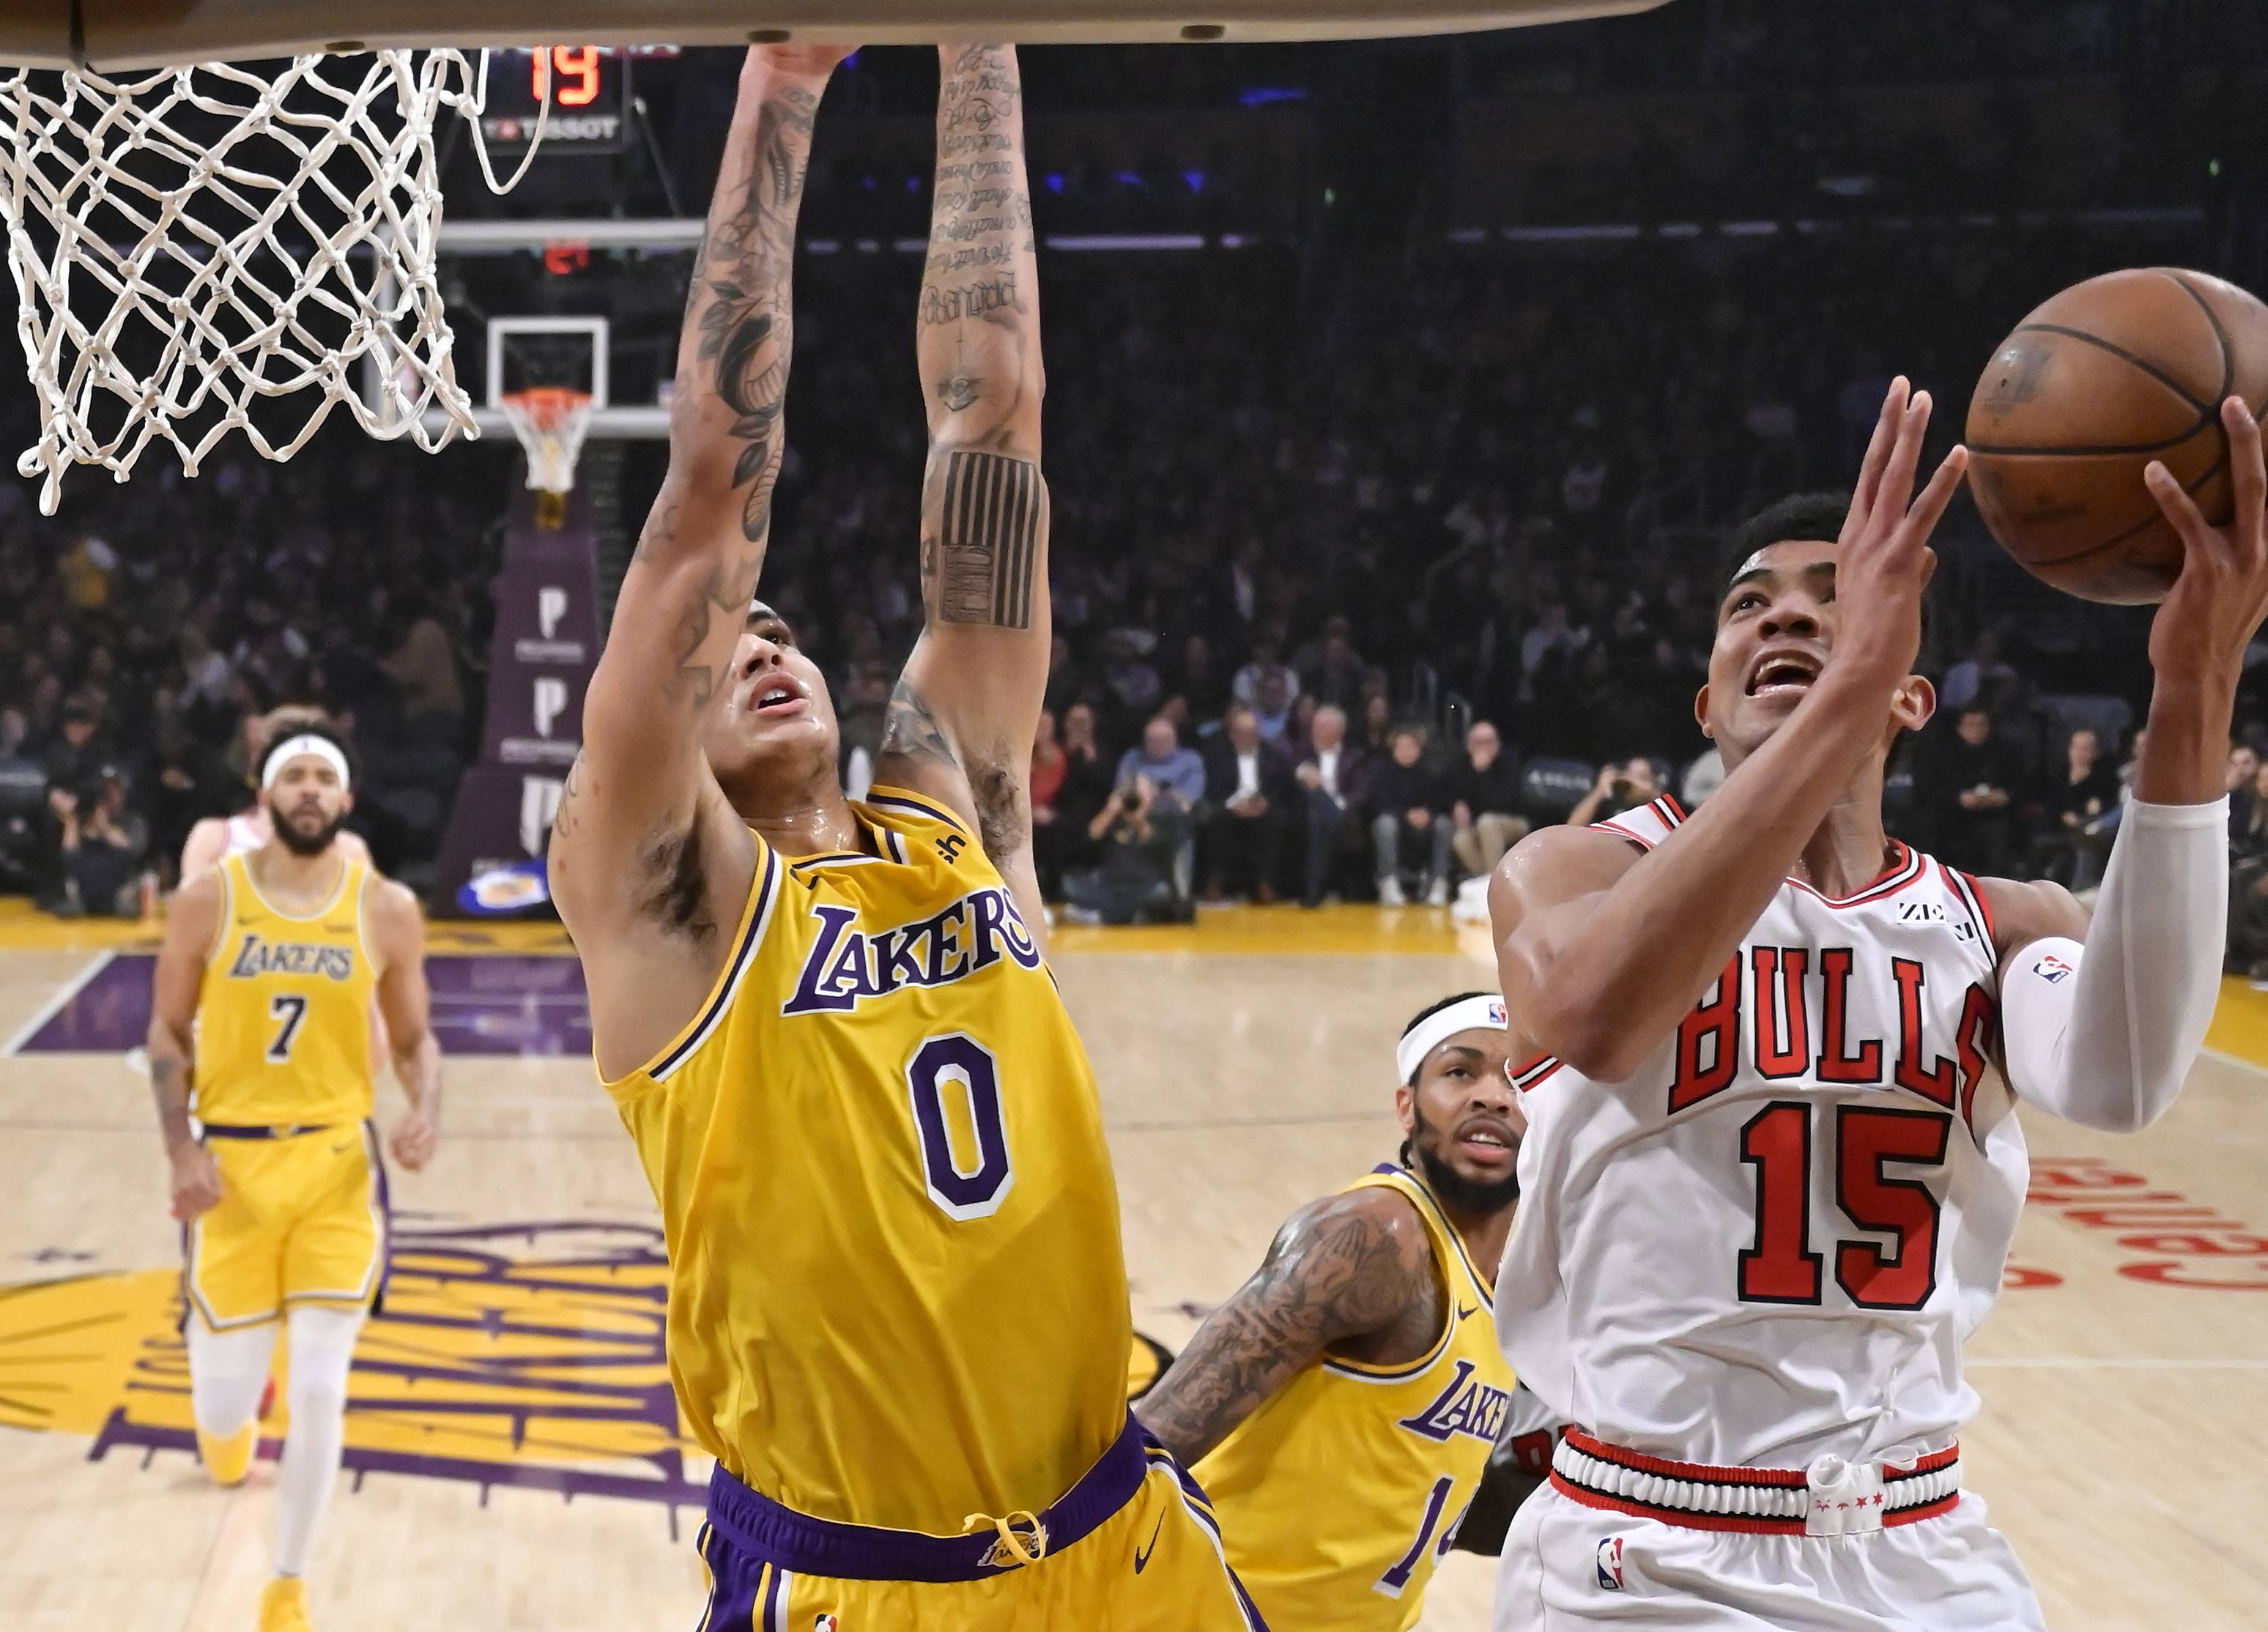 Parker returns to rotation as Bulls lose to Lakers